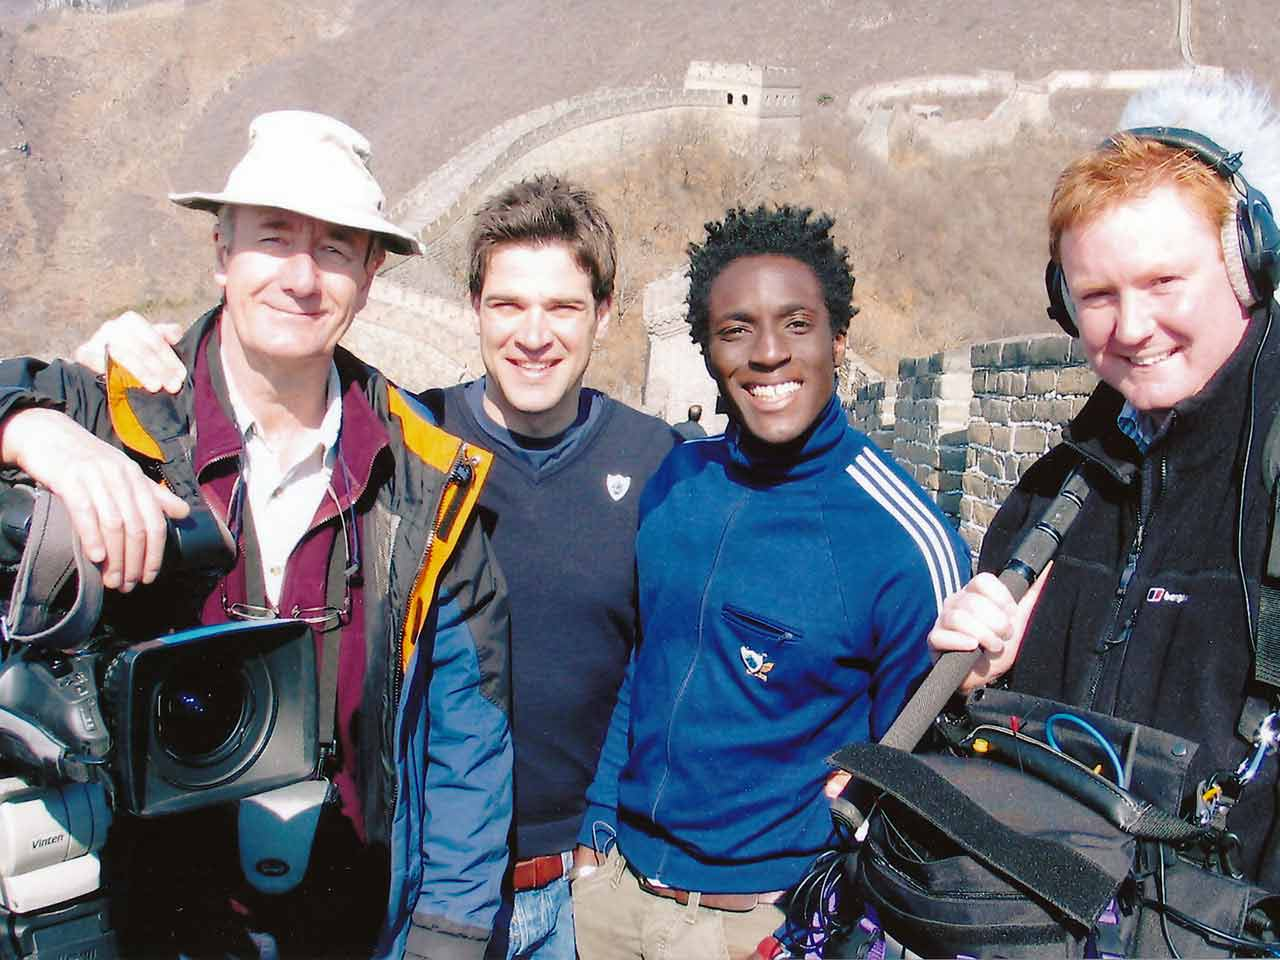 ALex Leger with the Blue Peter team on the Great Wall of China